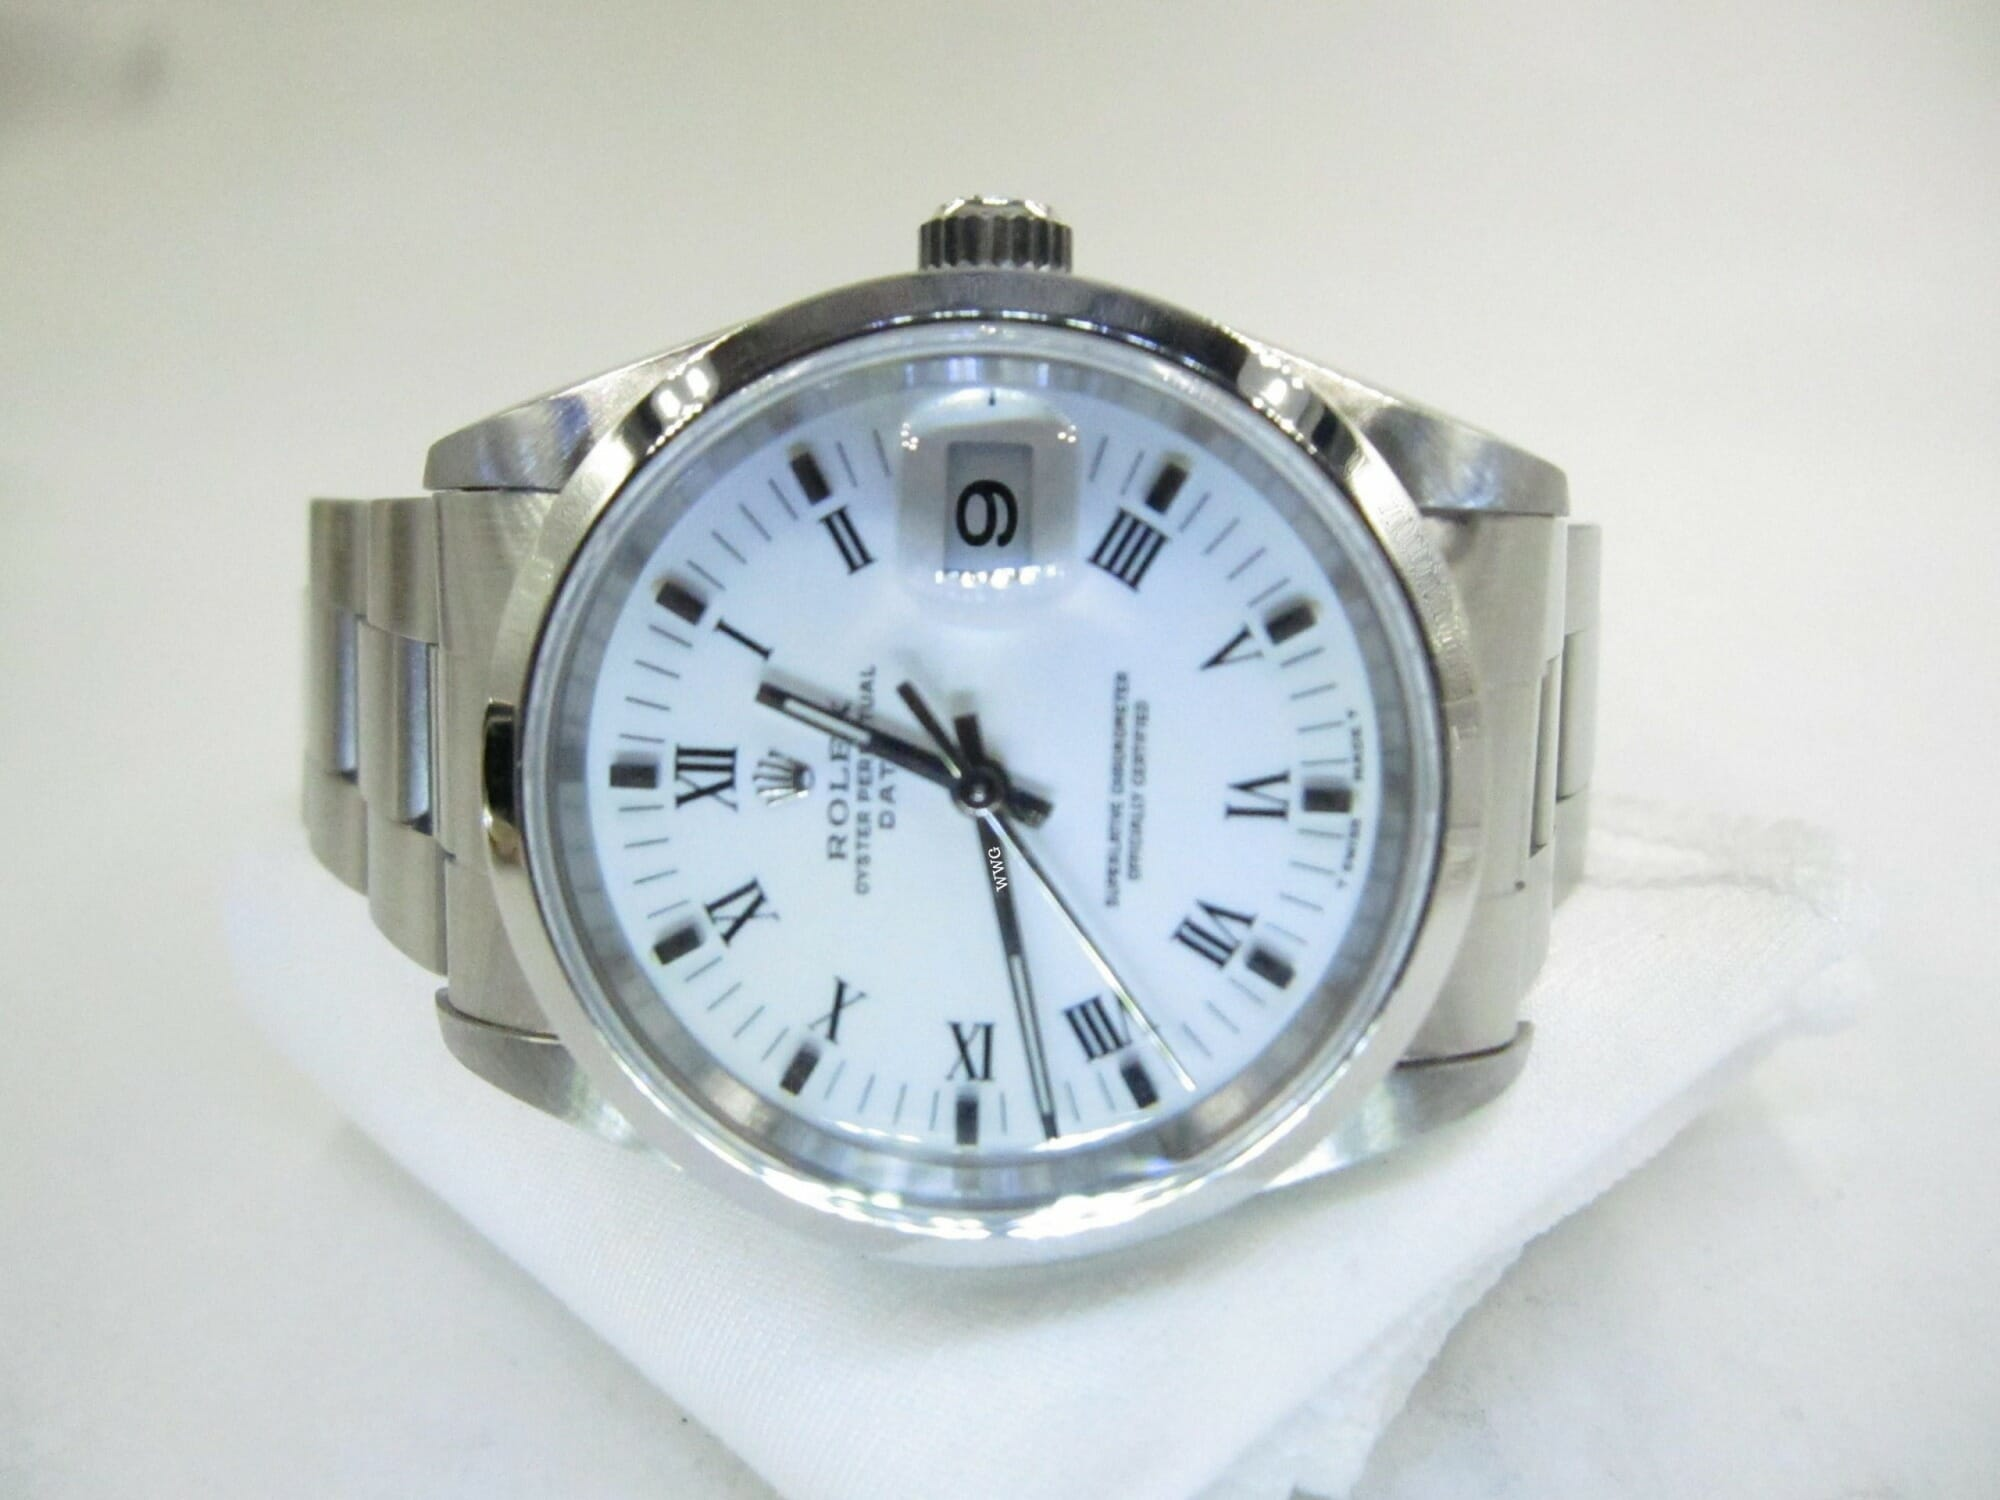 Rolex Oyster Perpetual Date 15200(Pre-Owned Rolex Watch)RL-315